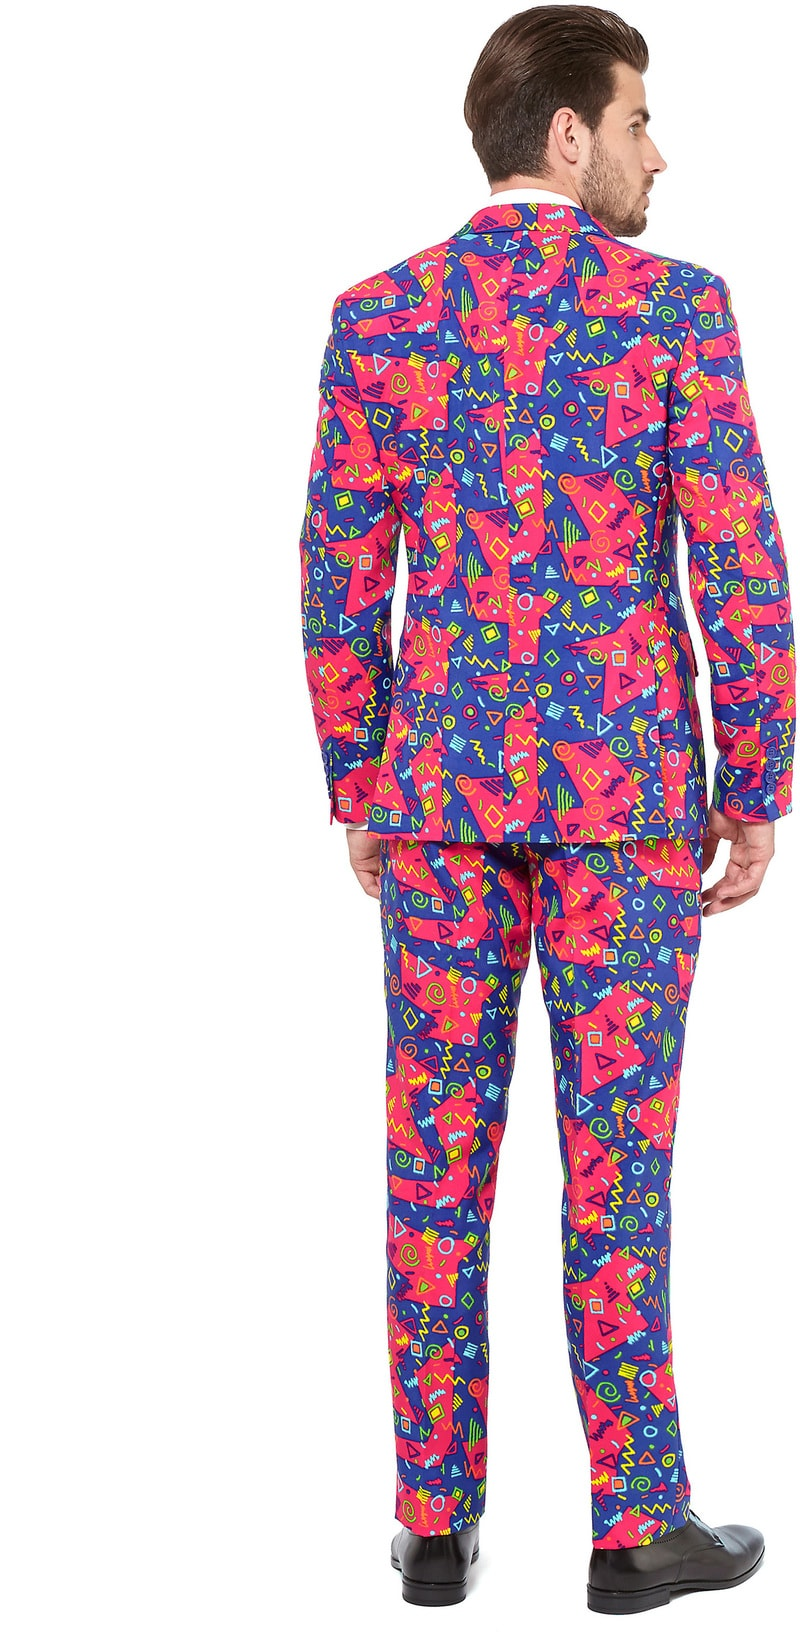 OppoSuits The Fresh Prince Suit photo 1